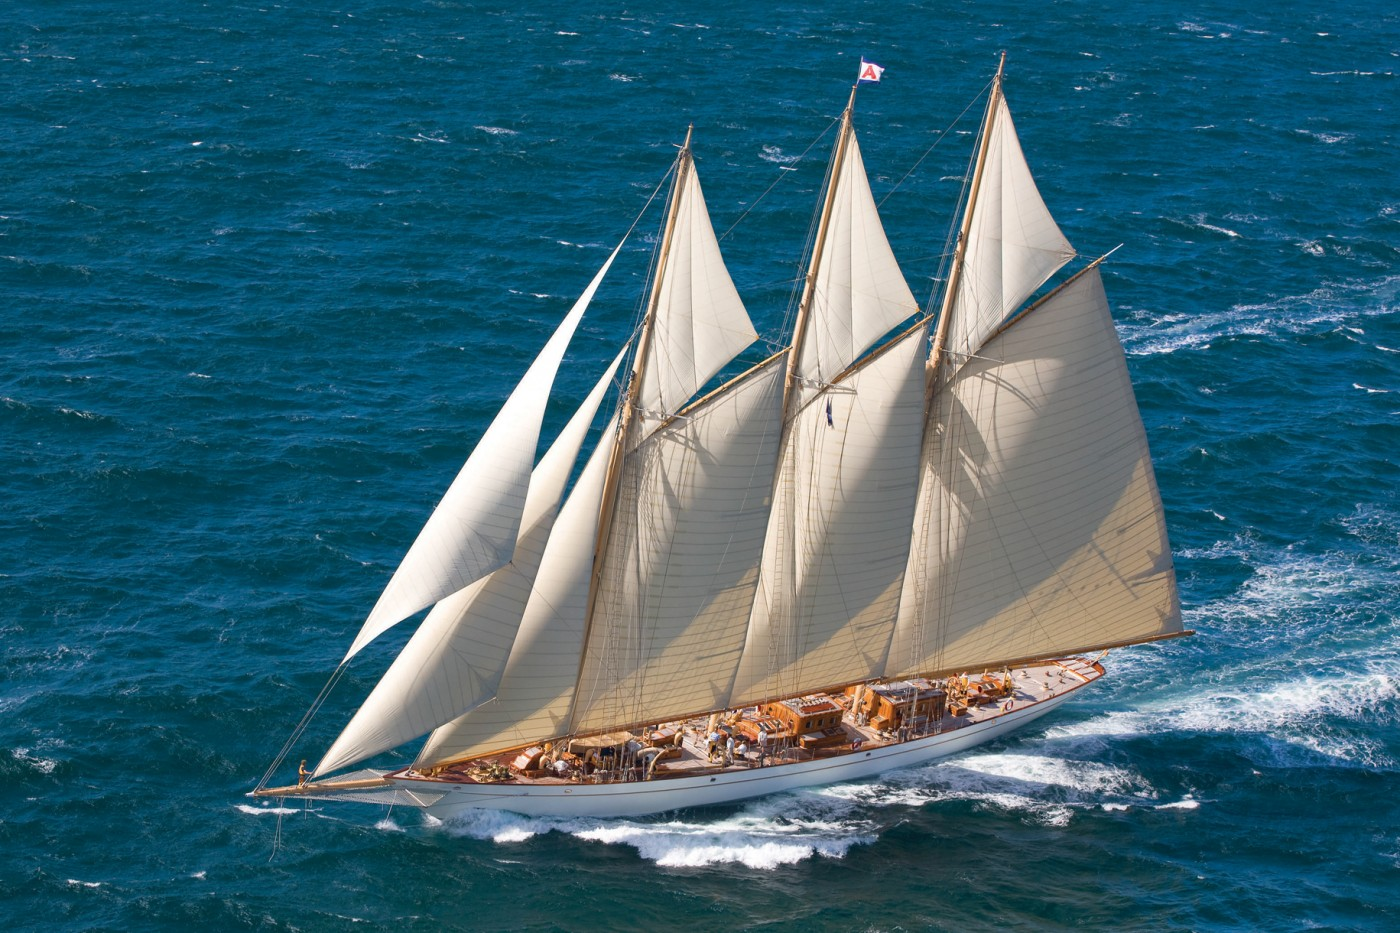 The beautifull 3 masted Schooner, Adix, the biggest boat in the race - photo Pendennis